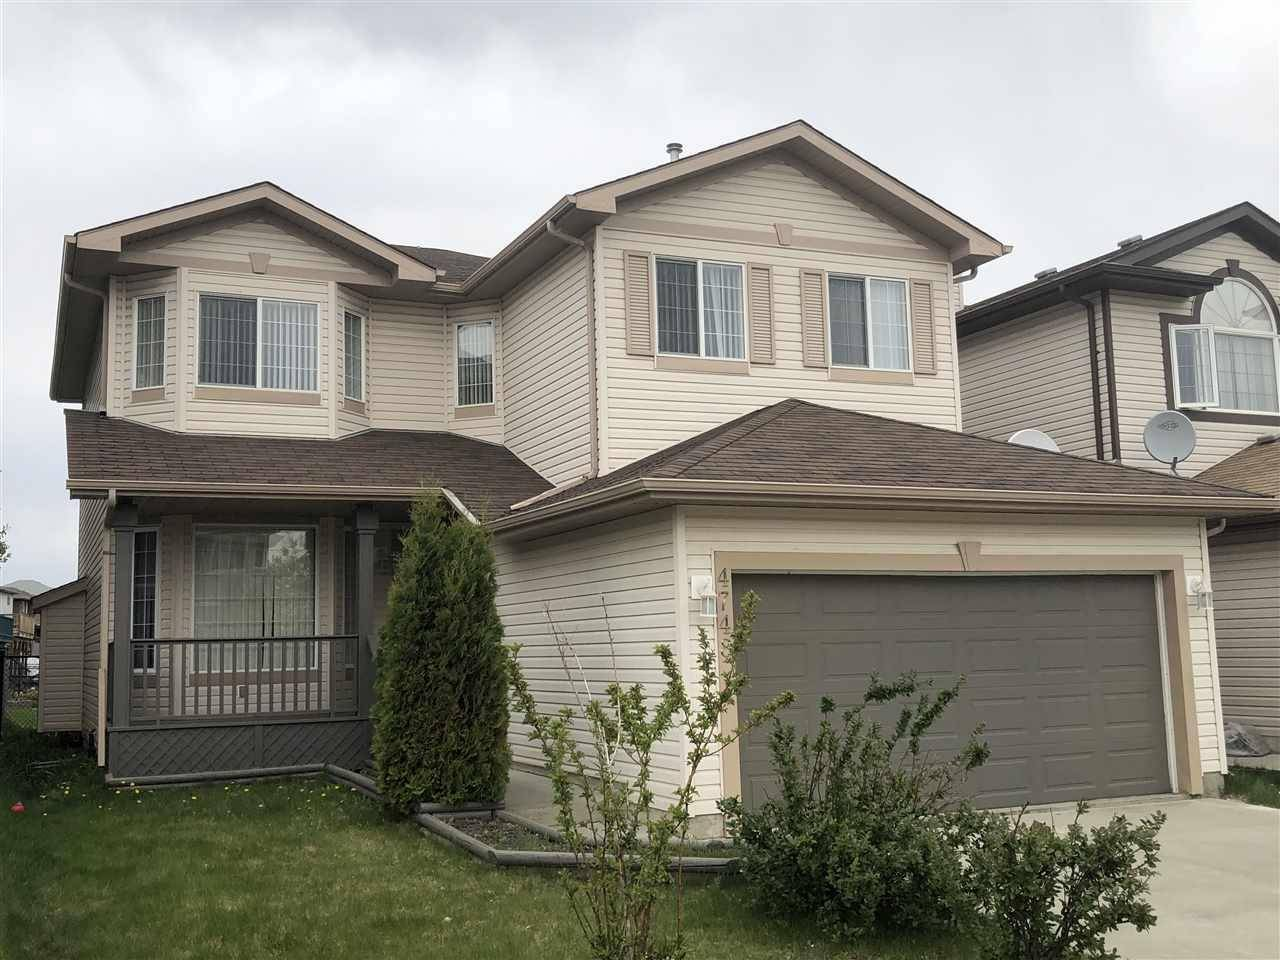 House for sale at 4748 154 Ave Nw Edmonton Alberta - MLS: E4182023